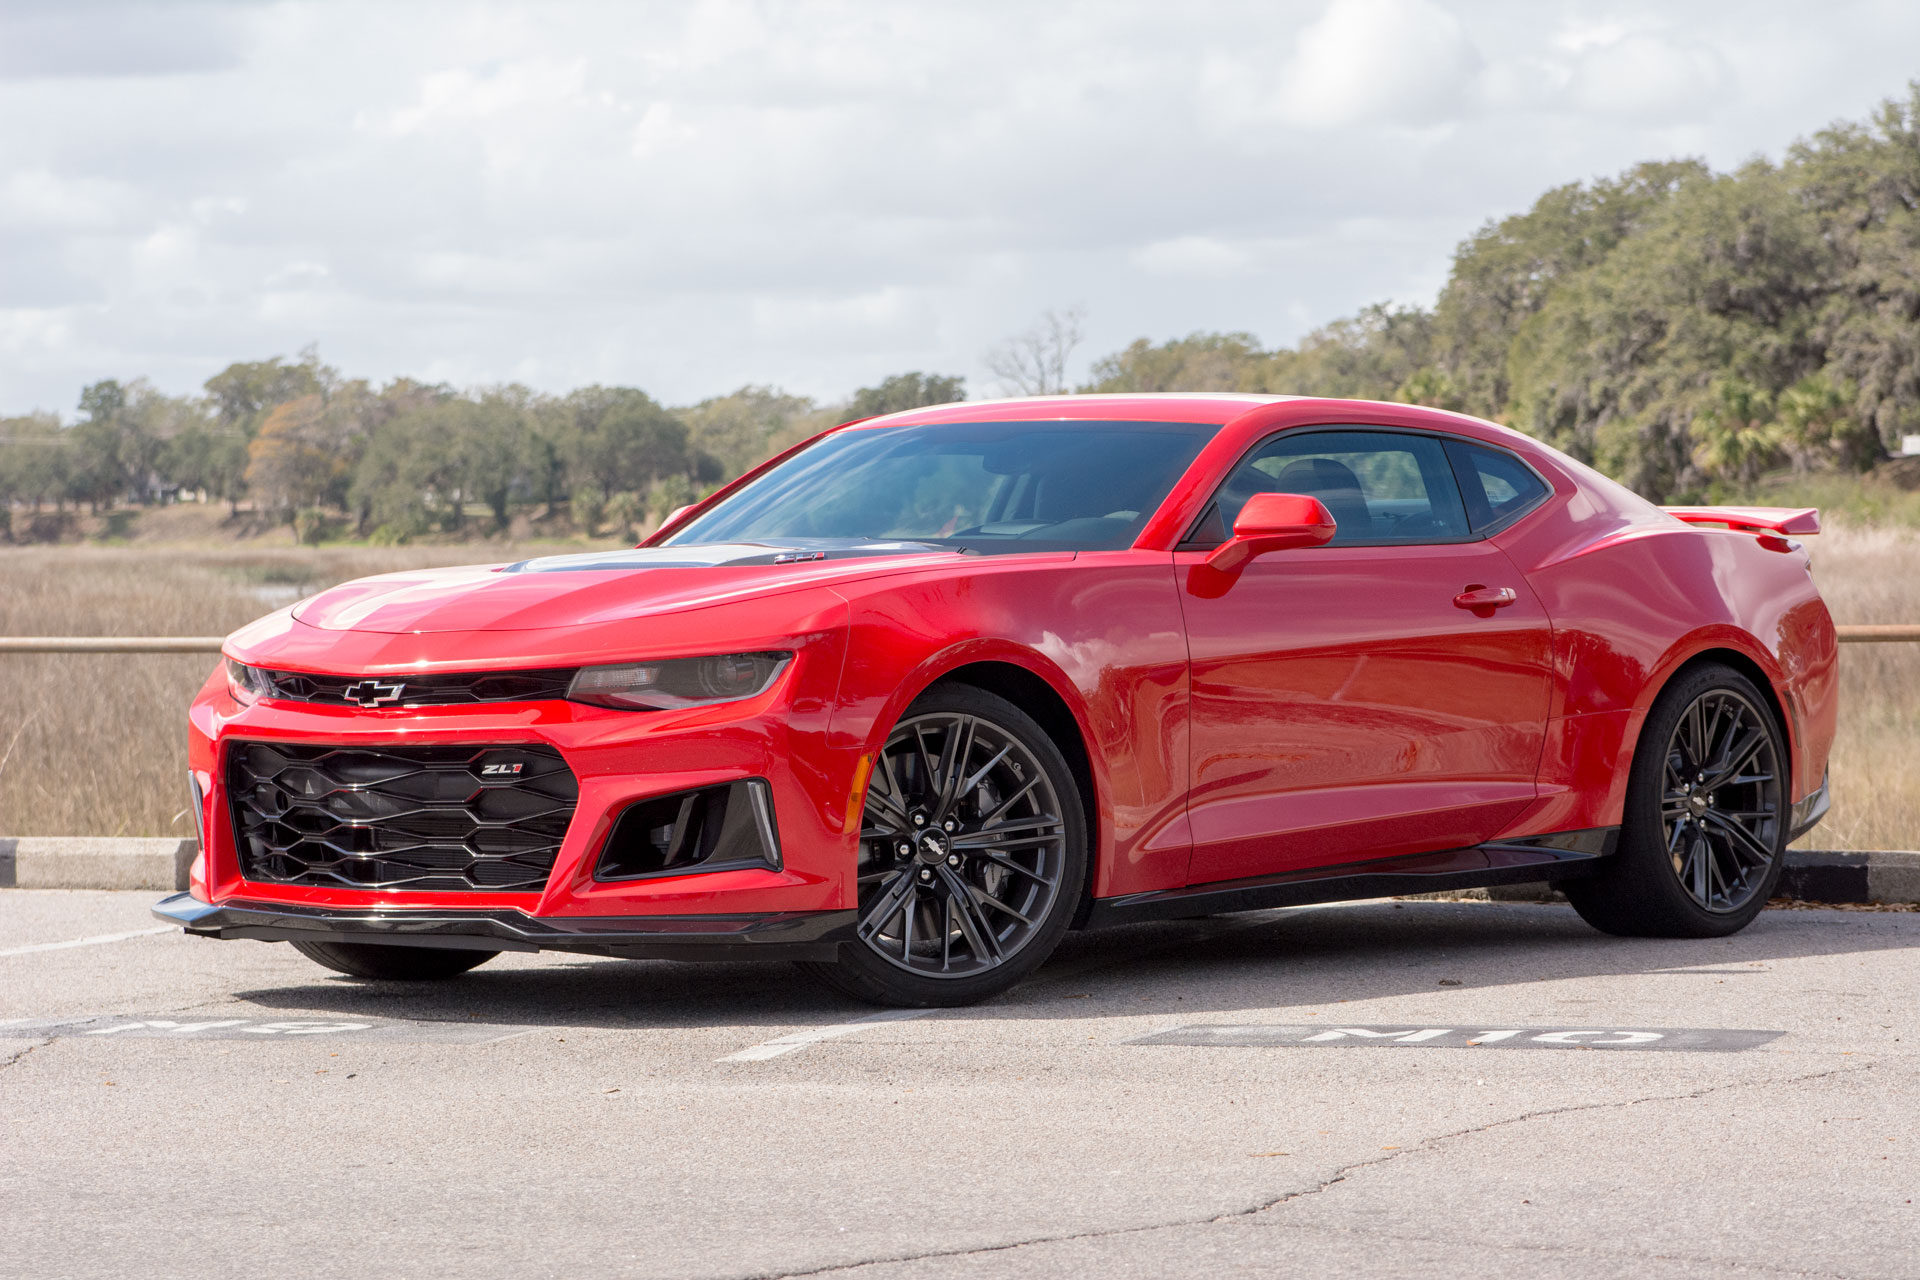 2017 chevrolet camaro zl1 first drive review too fast to be fun. Black Bedroom Furniture Sets. Home Design Ideas